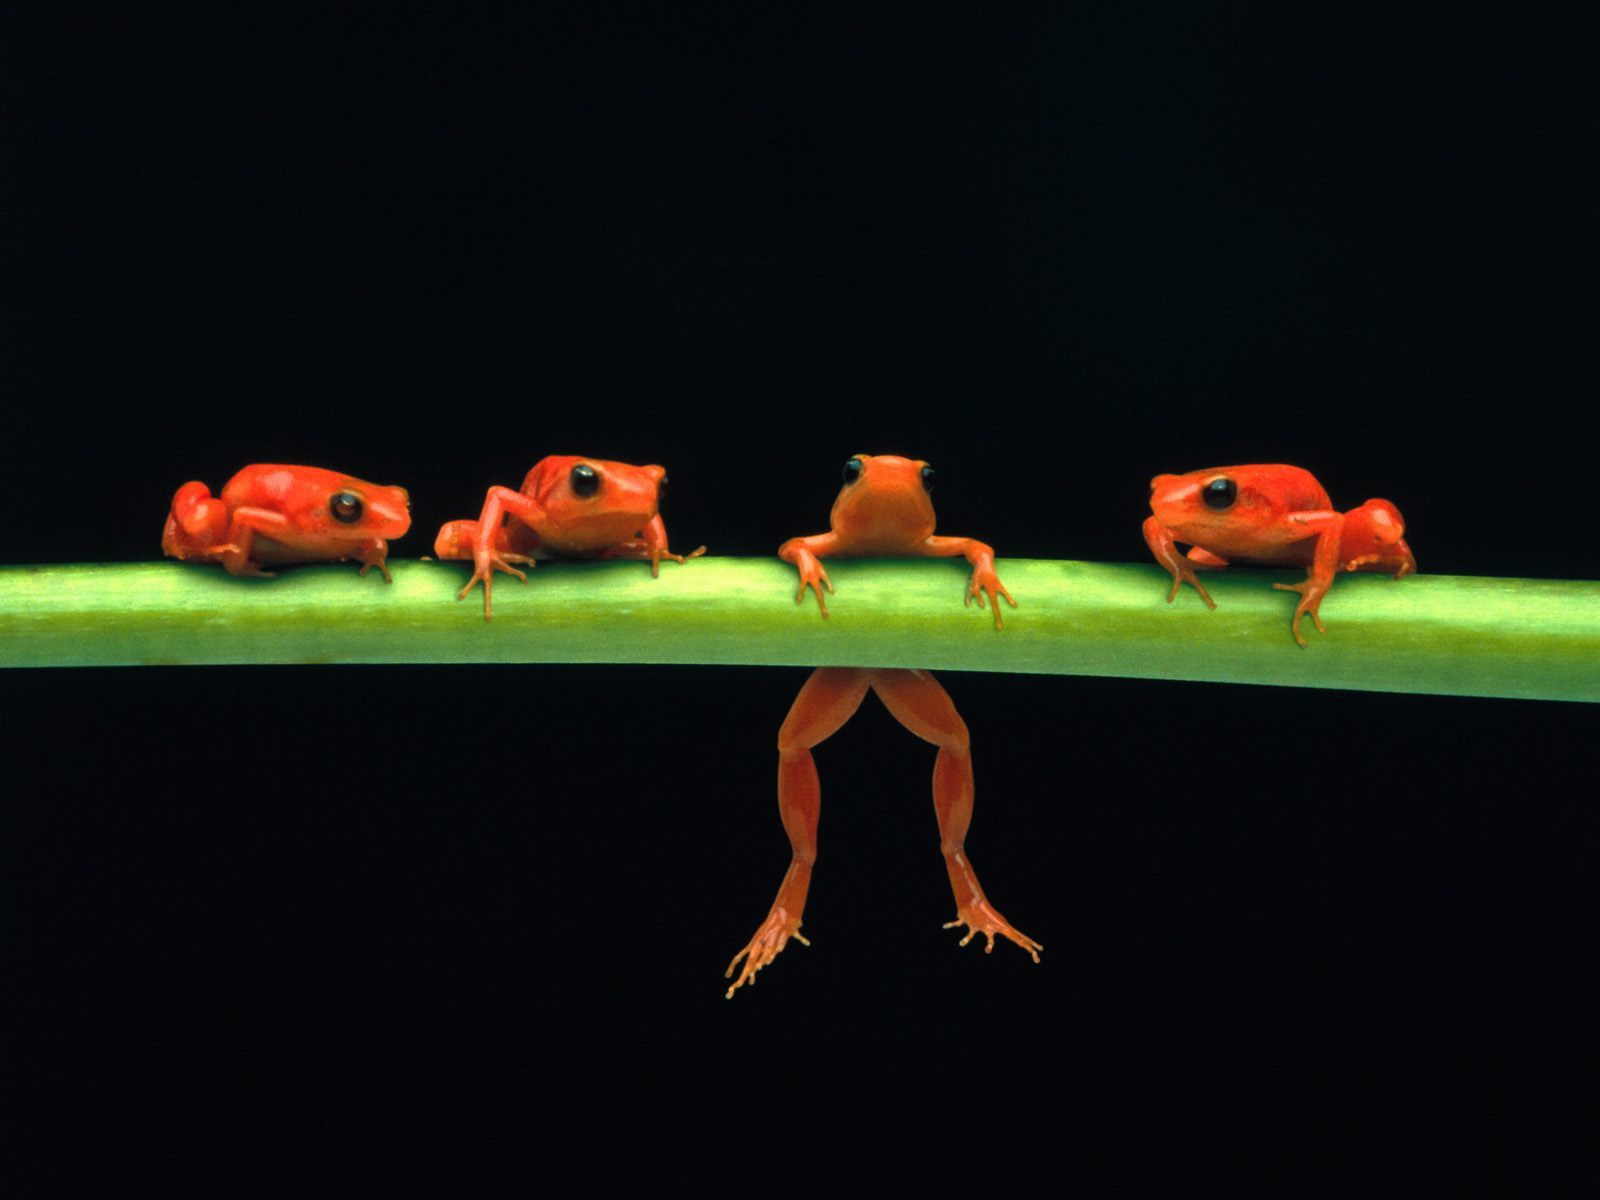 Frogs hanging around